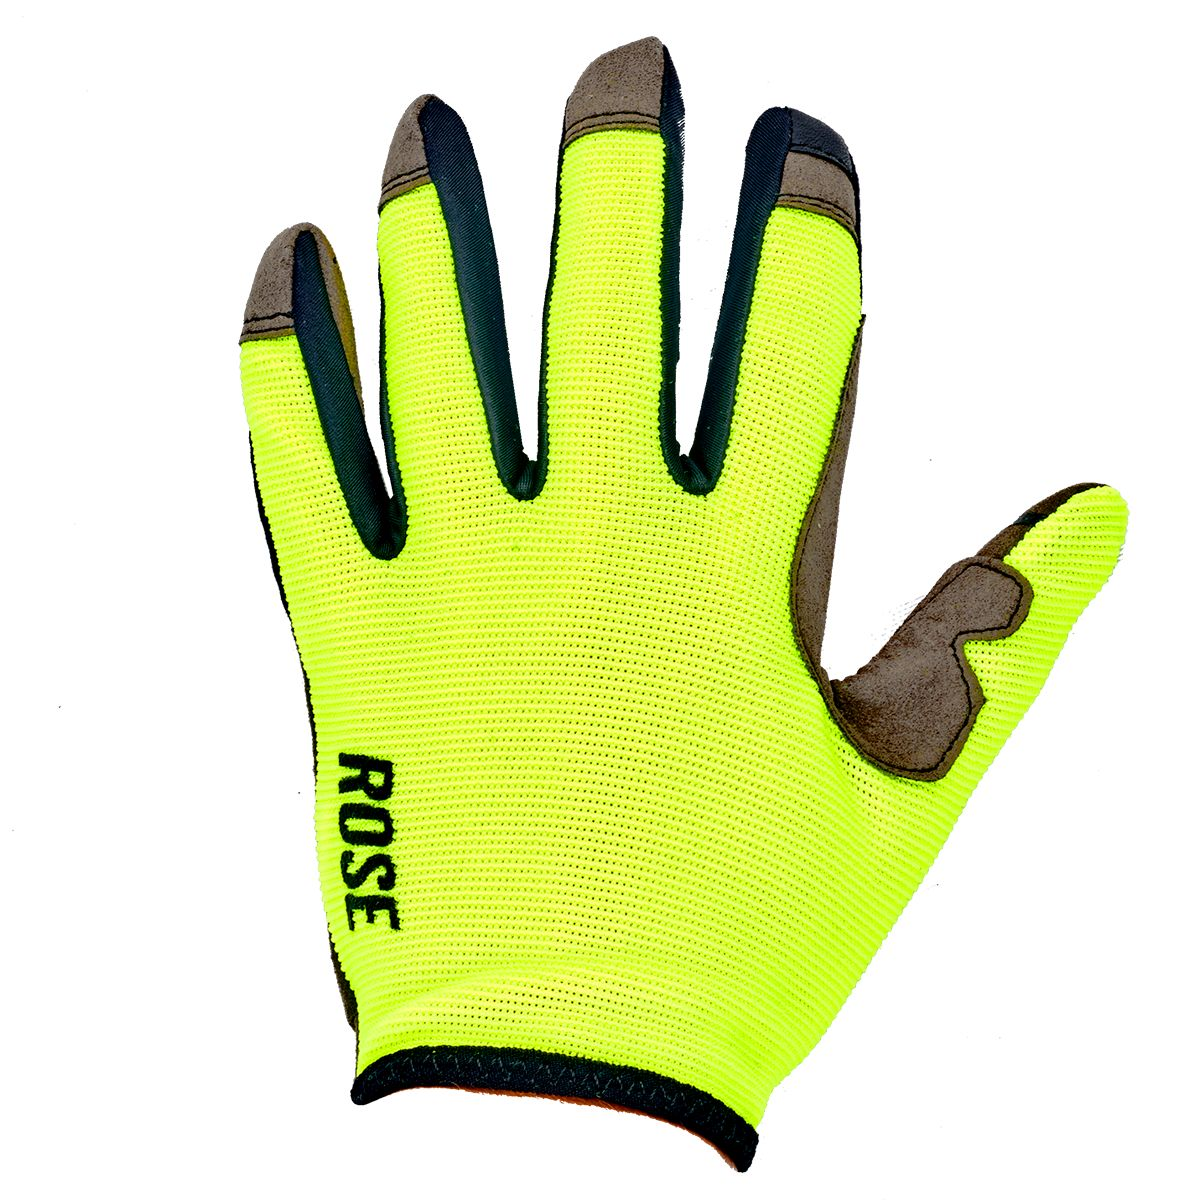 ROSE PURE LF cycling gloves | Handsker